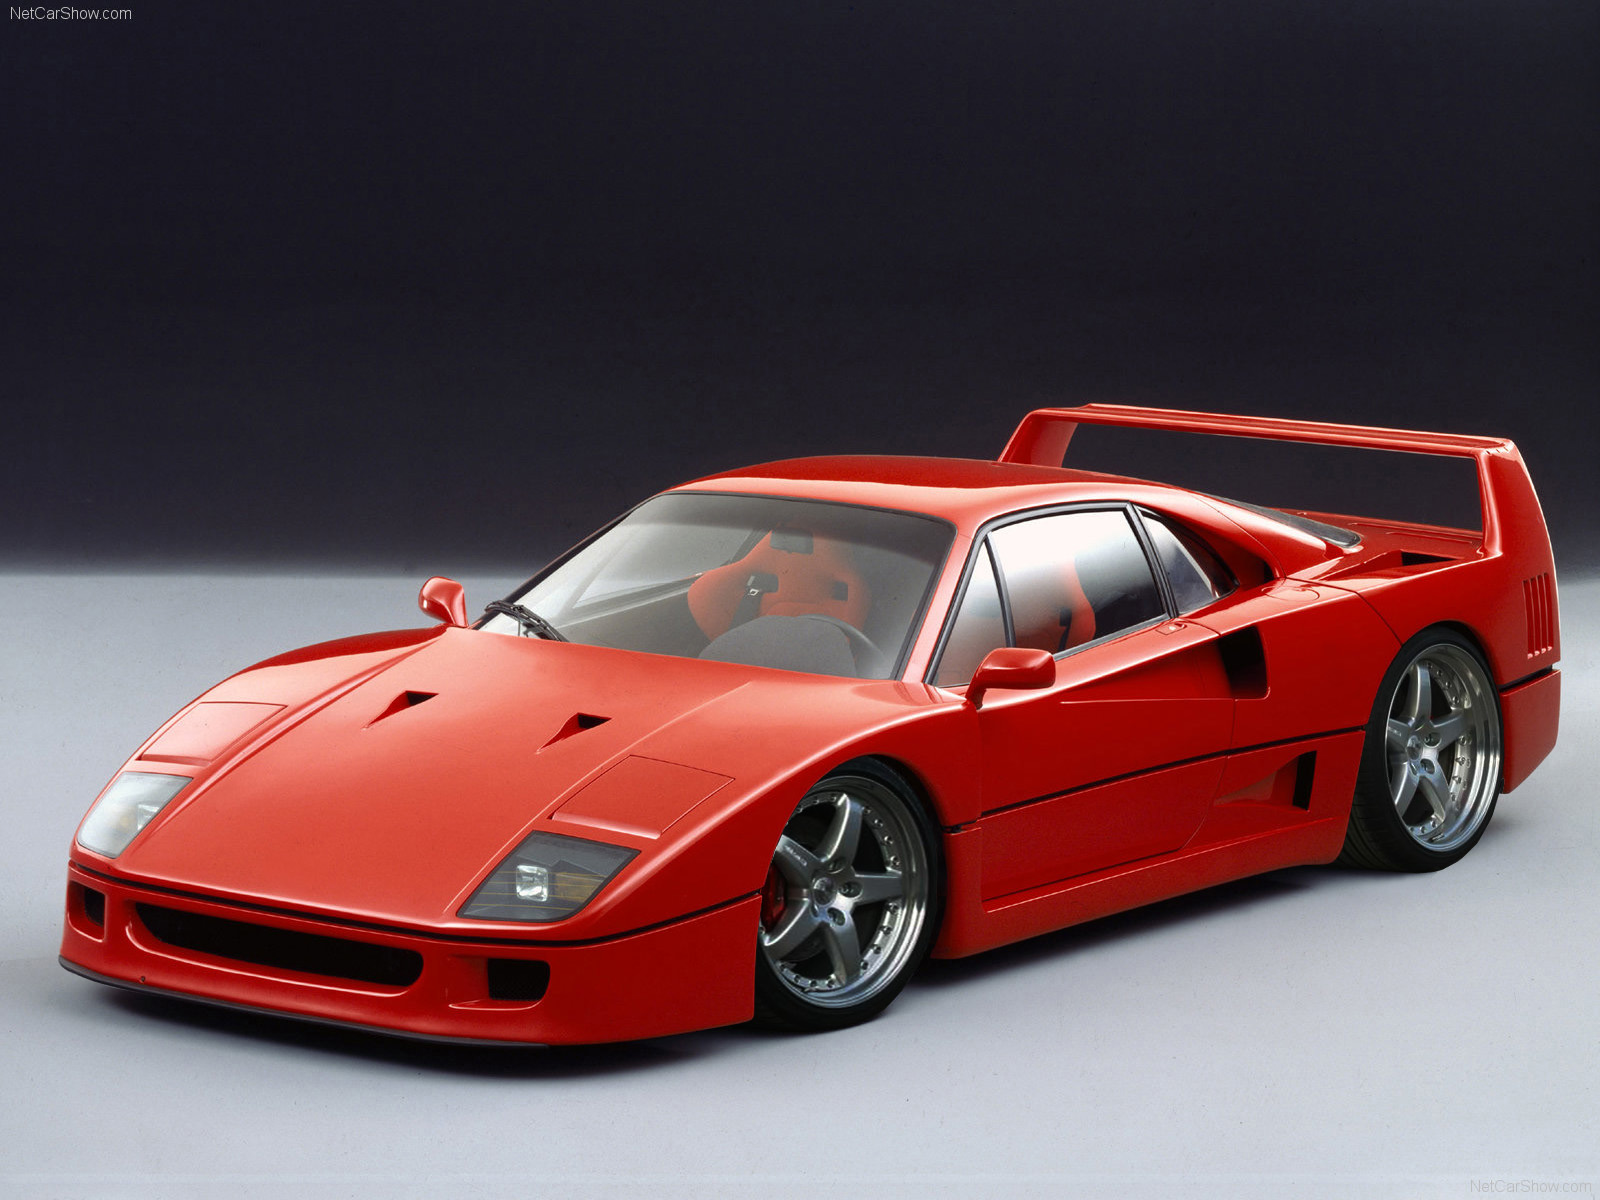 ferrari f40 deine automeile im netz. Black Bedroom Furniture Sets. Home Design Ideas